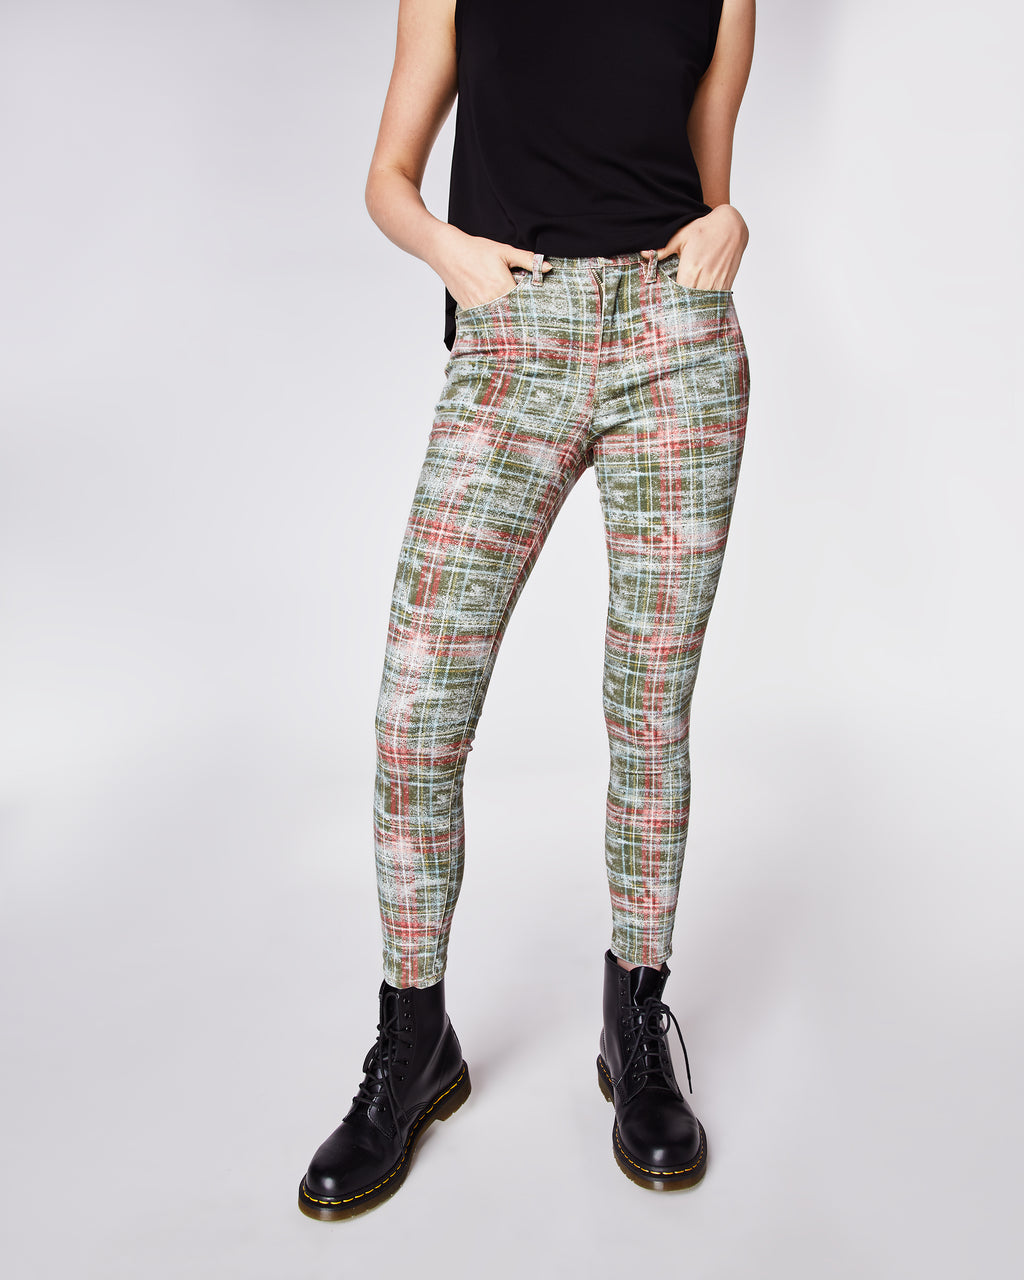 AS10176 - WEATHERED PLAID JEANS - bottoms - denim - In a green and red plaid, these skinny jeans are perfect for the holiday season. Finished with a zipper and clasp for closure. Unlined.